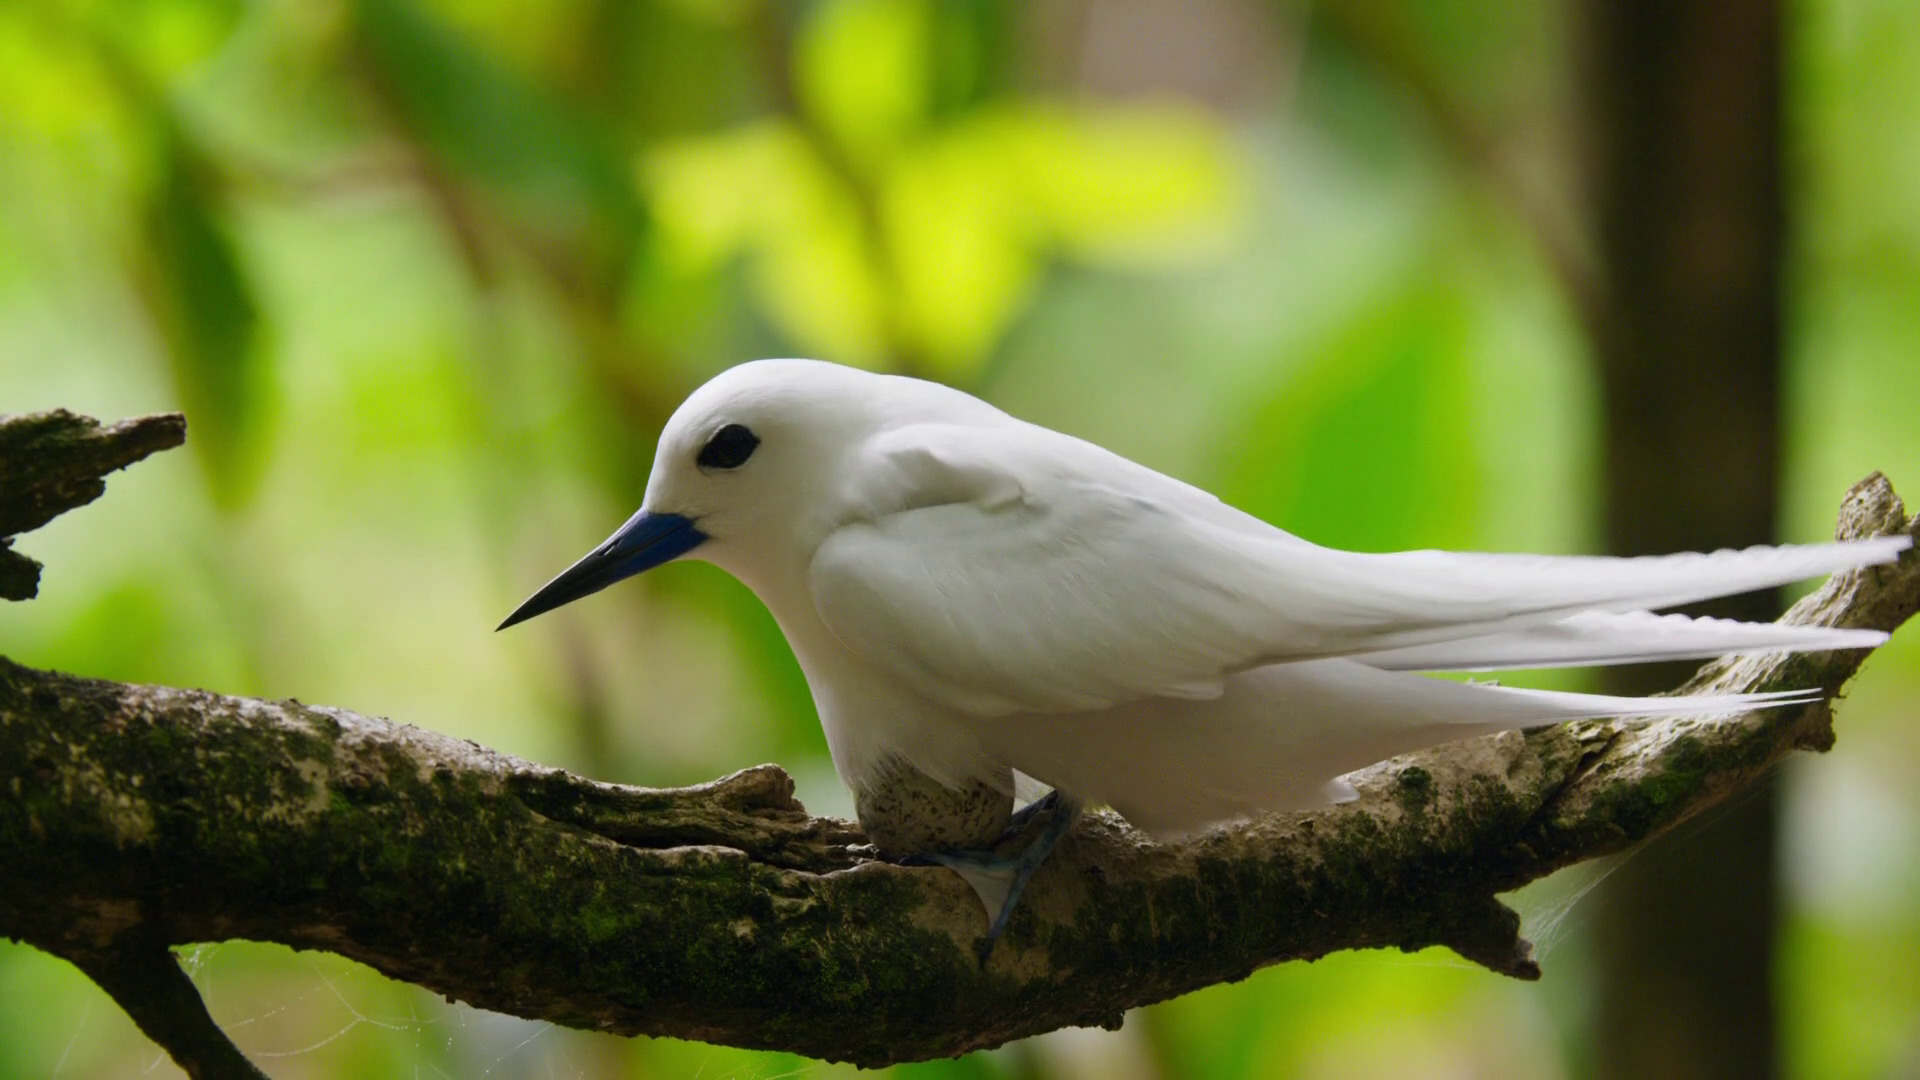 White tern (Gygis alba candida) incubates on bare branch; Image ONLY